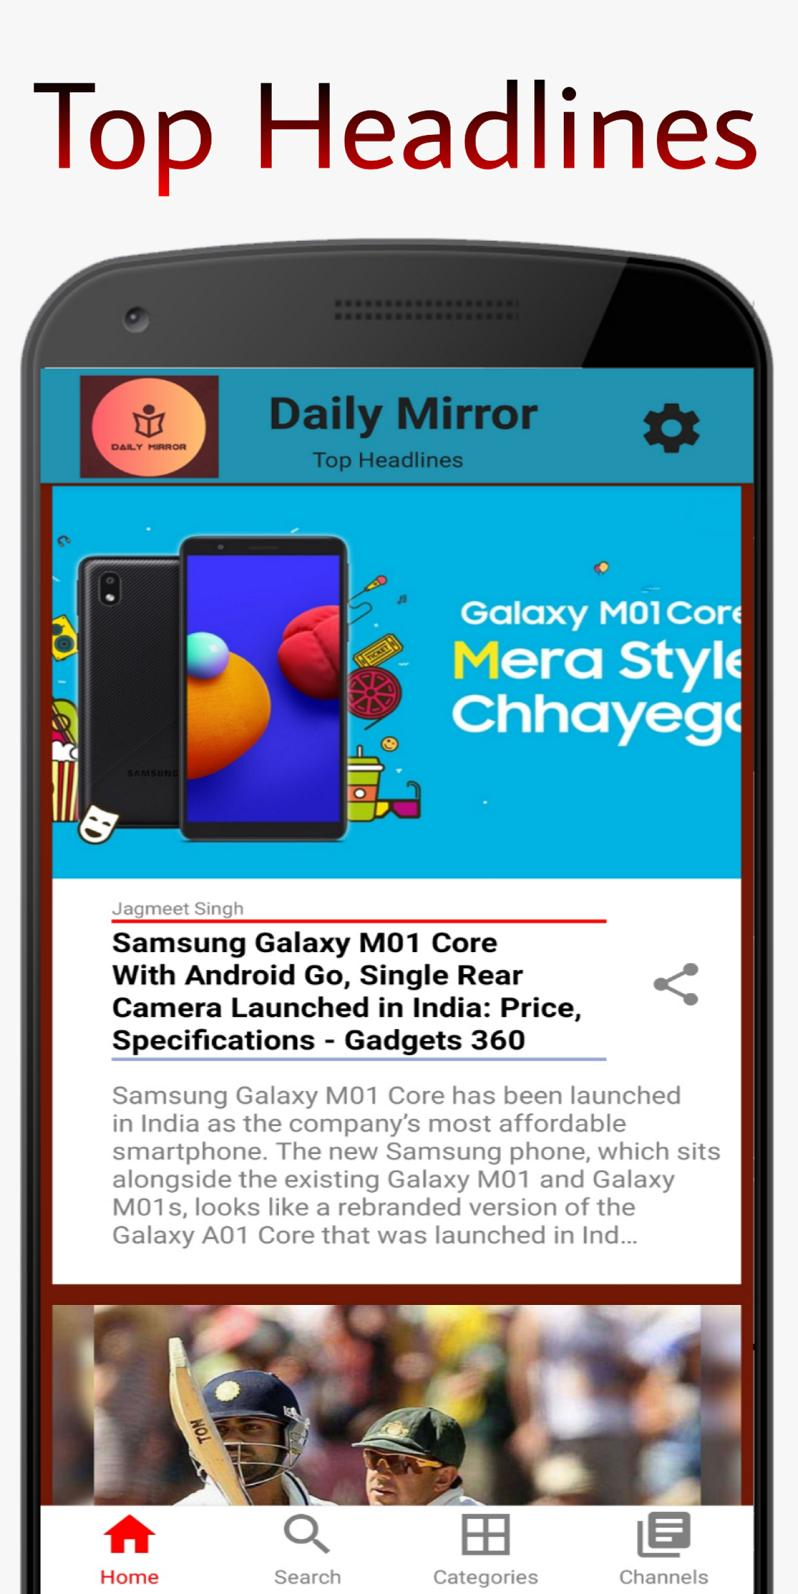 Daily Mirror - The News App